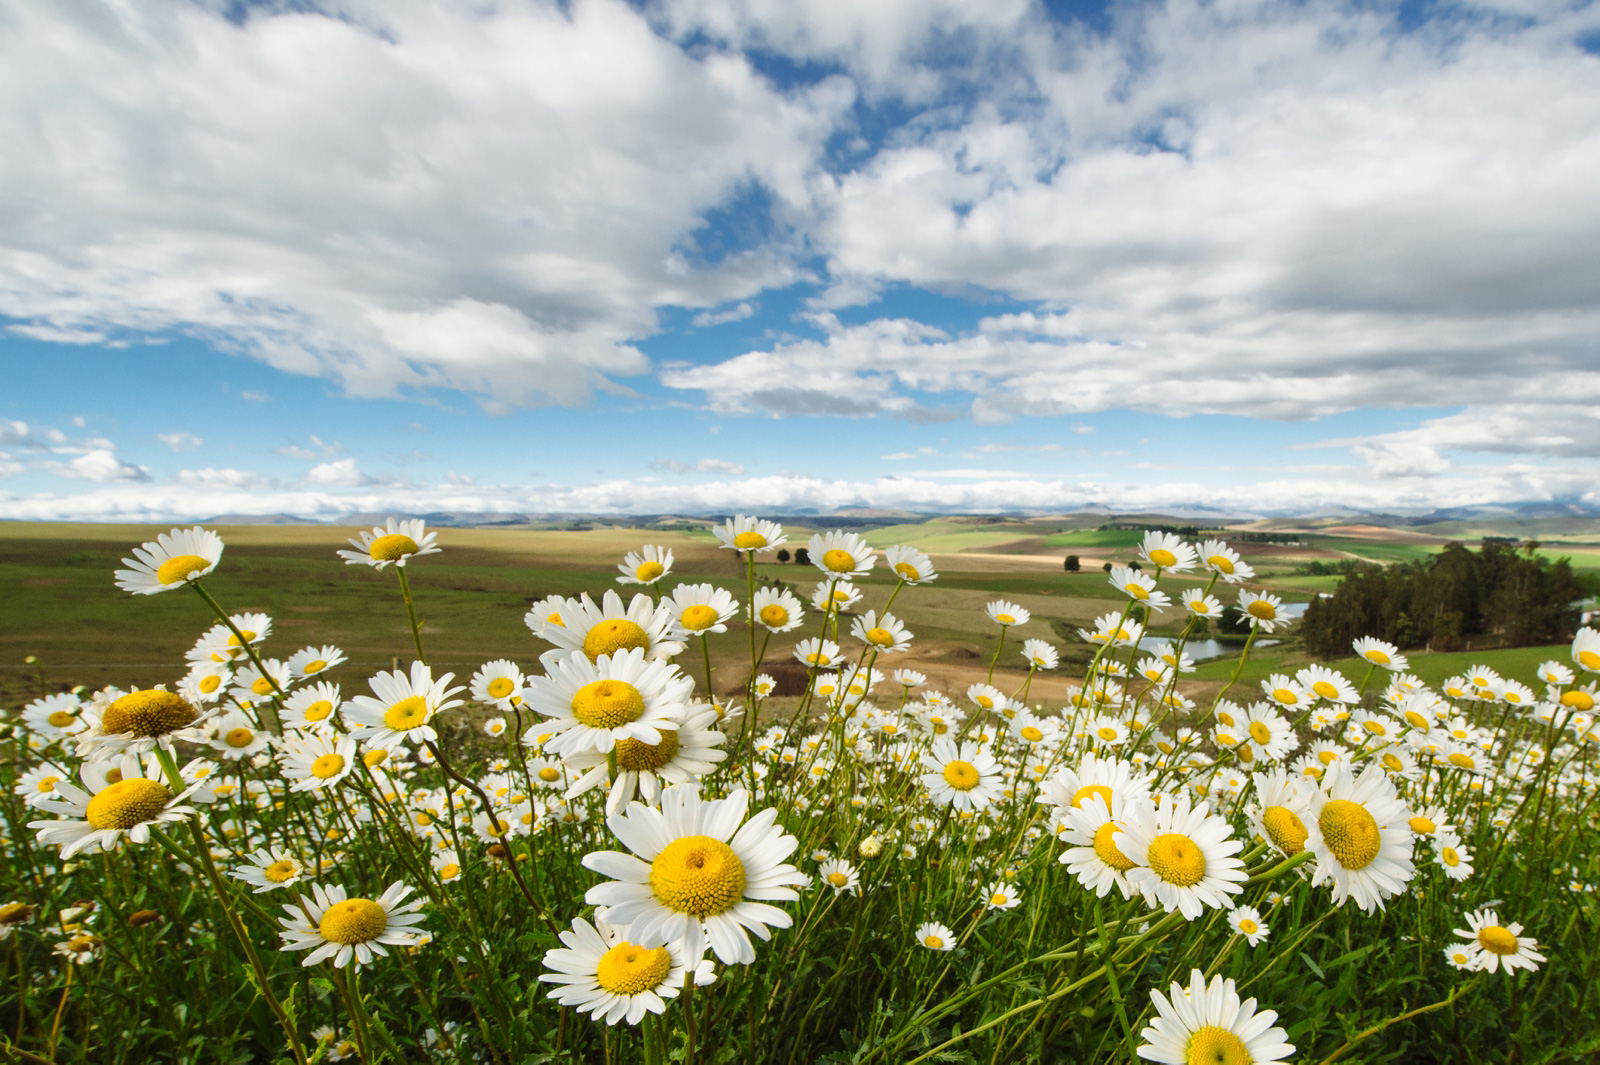 Daisies in the midlands